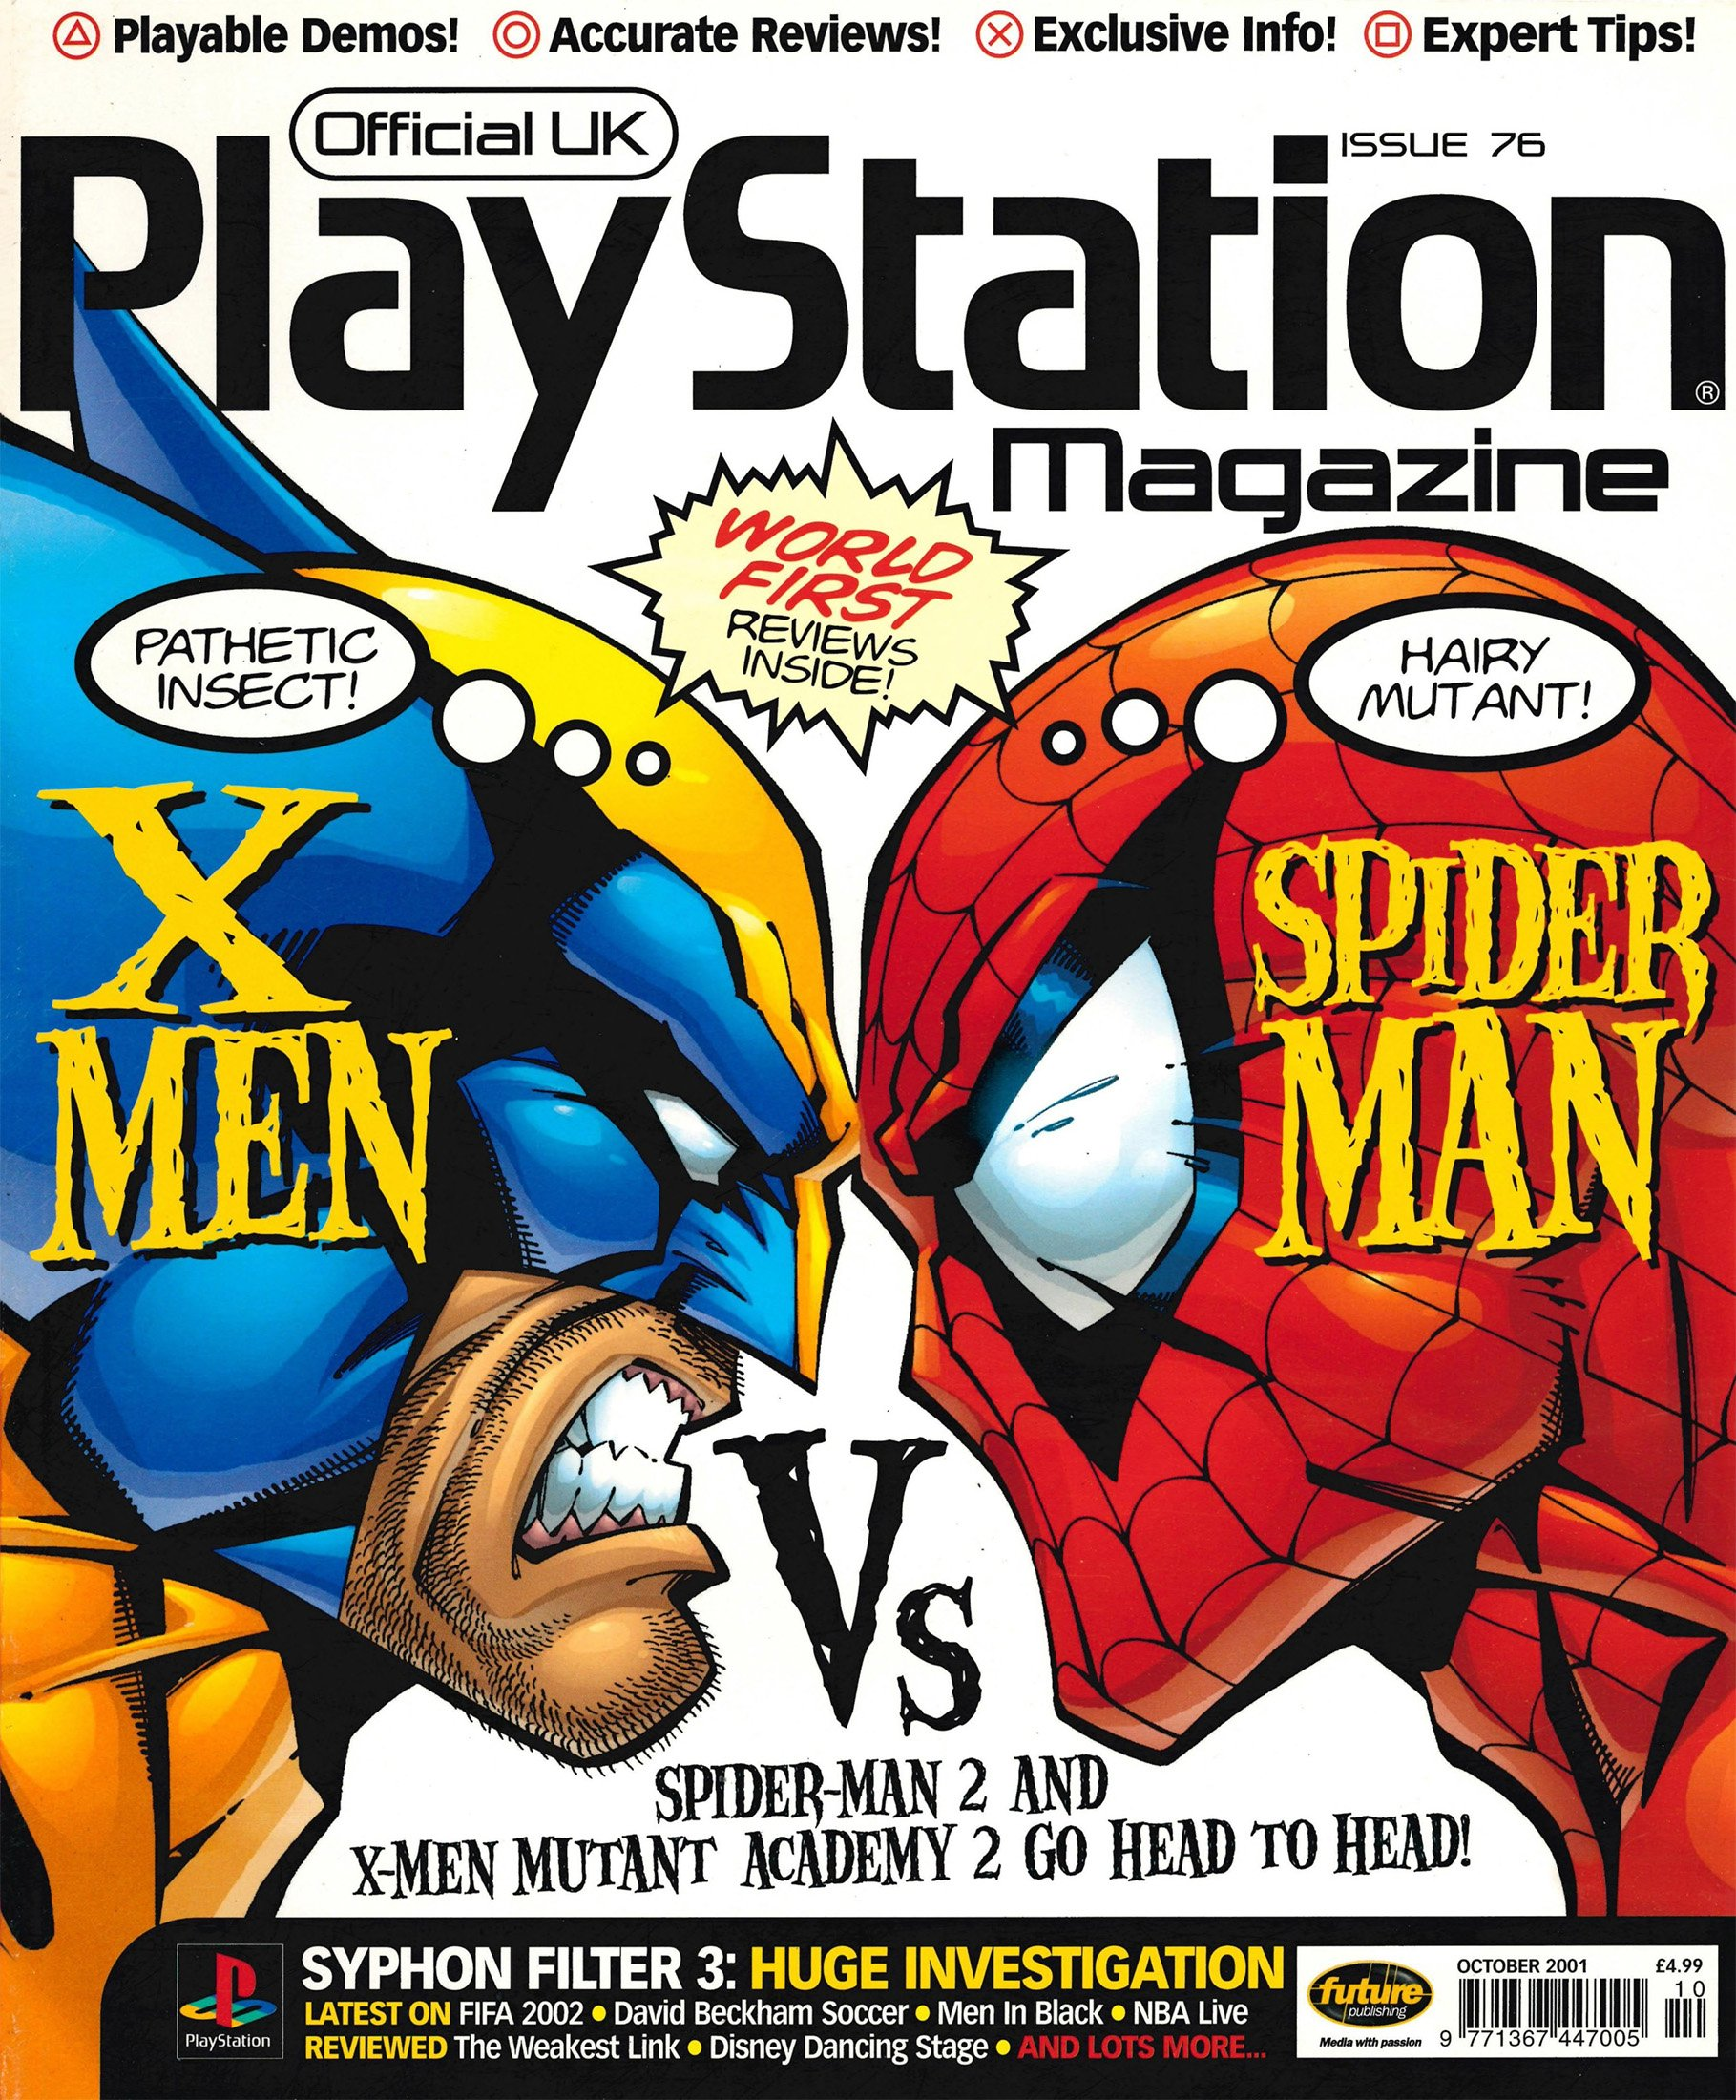 Official UK PlayStation Magazine Issue 076 (October 2001)